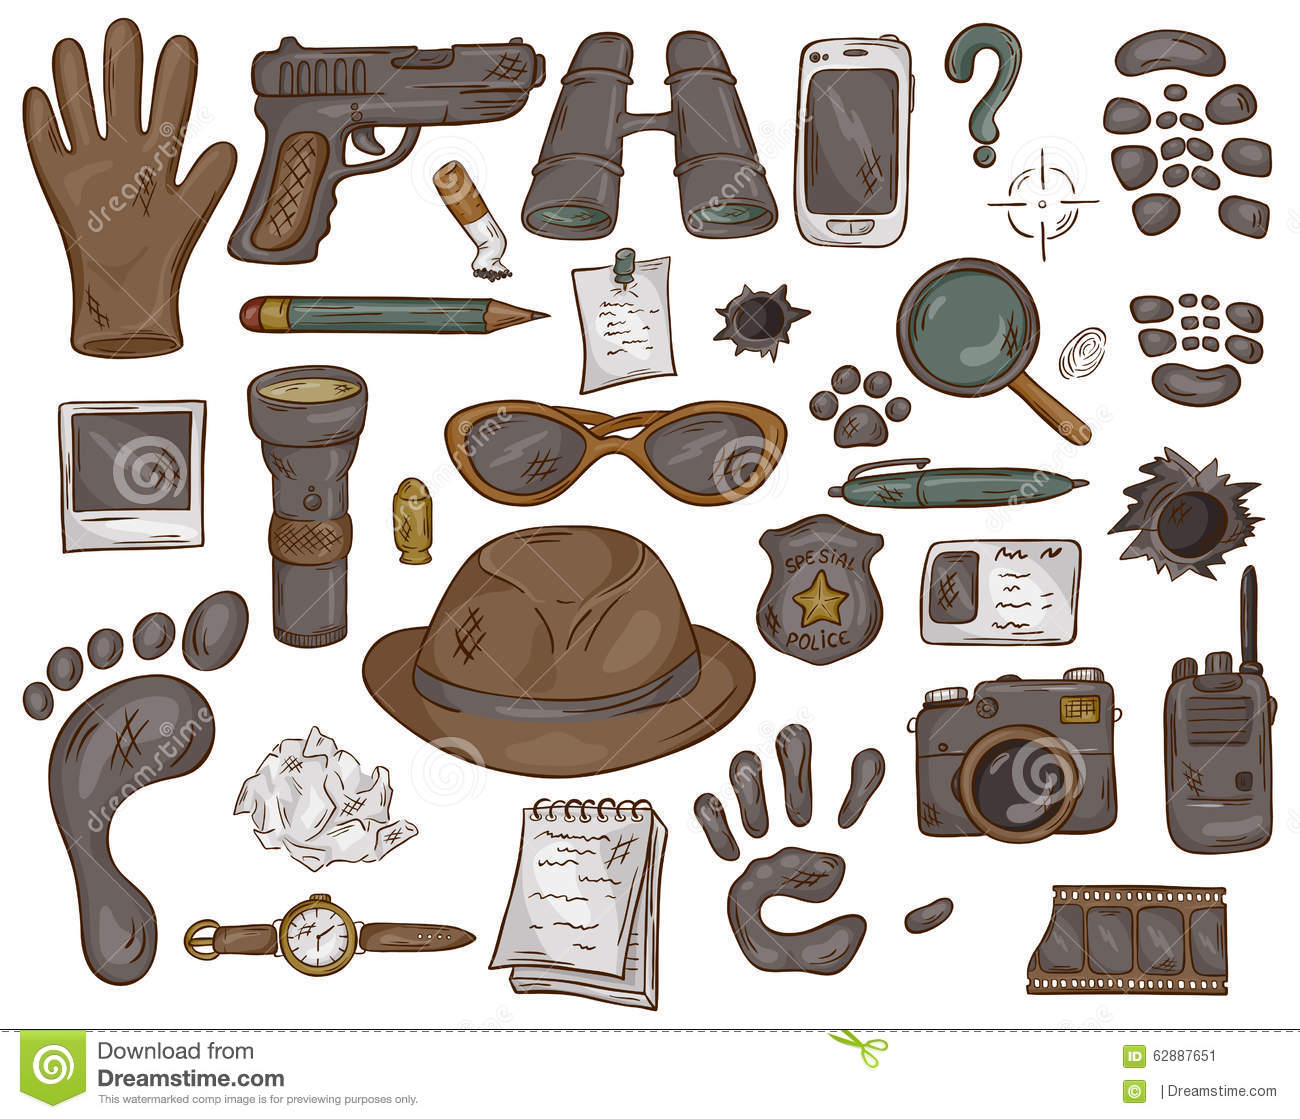 Vector hand drawn set of illustration with detective tools and evidence